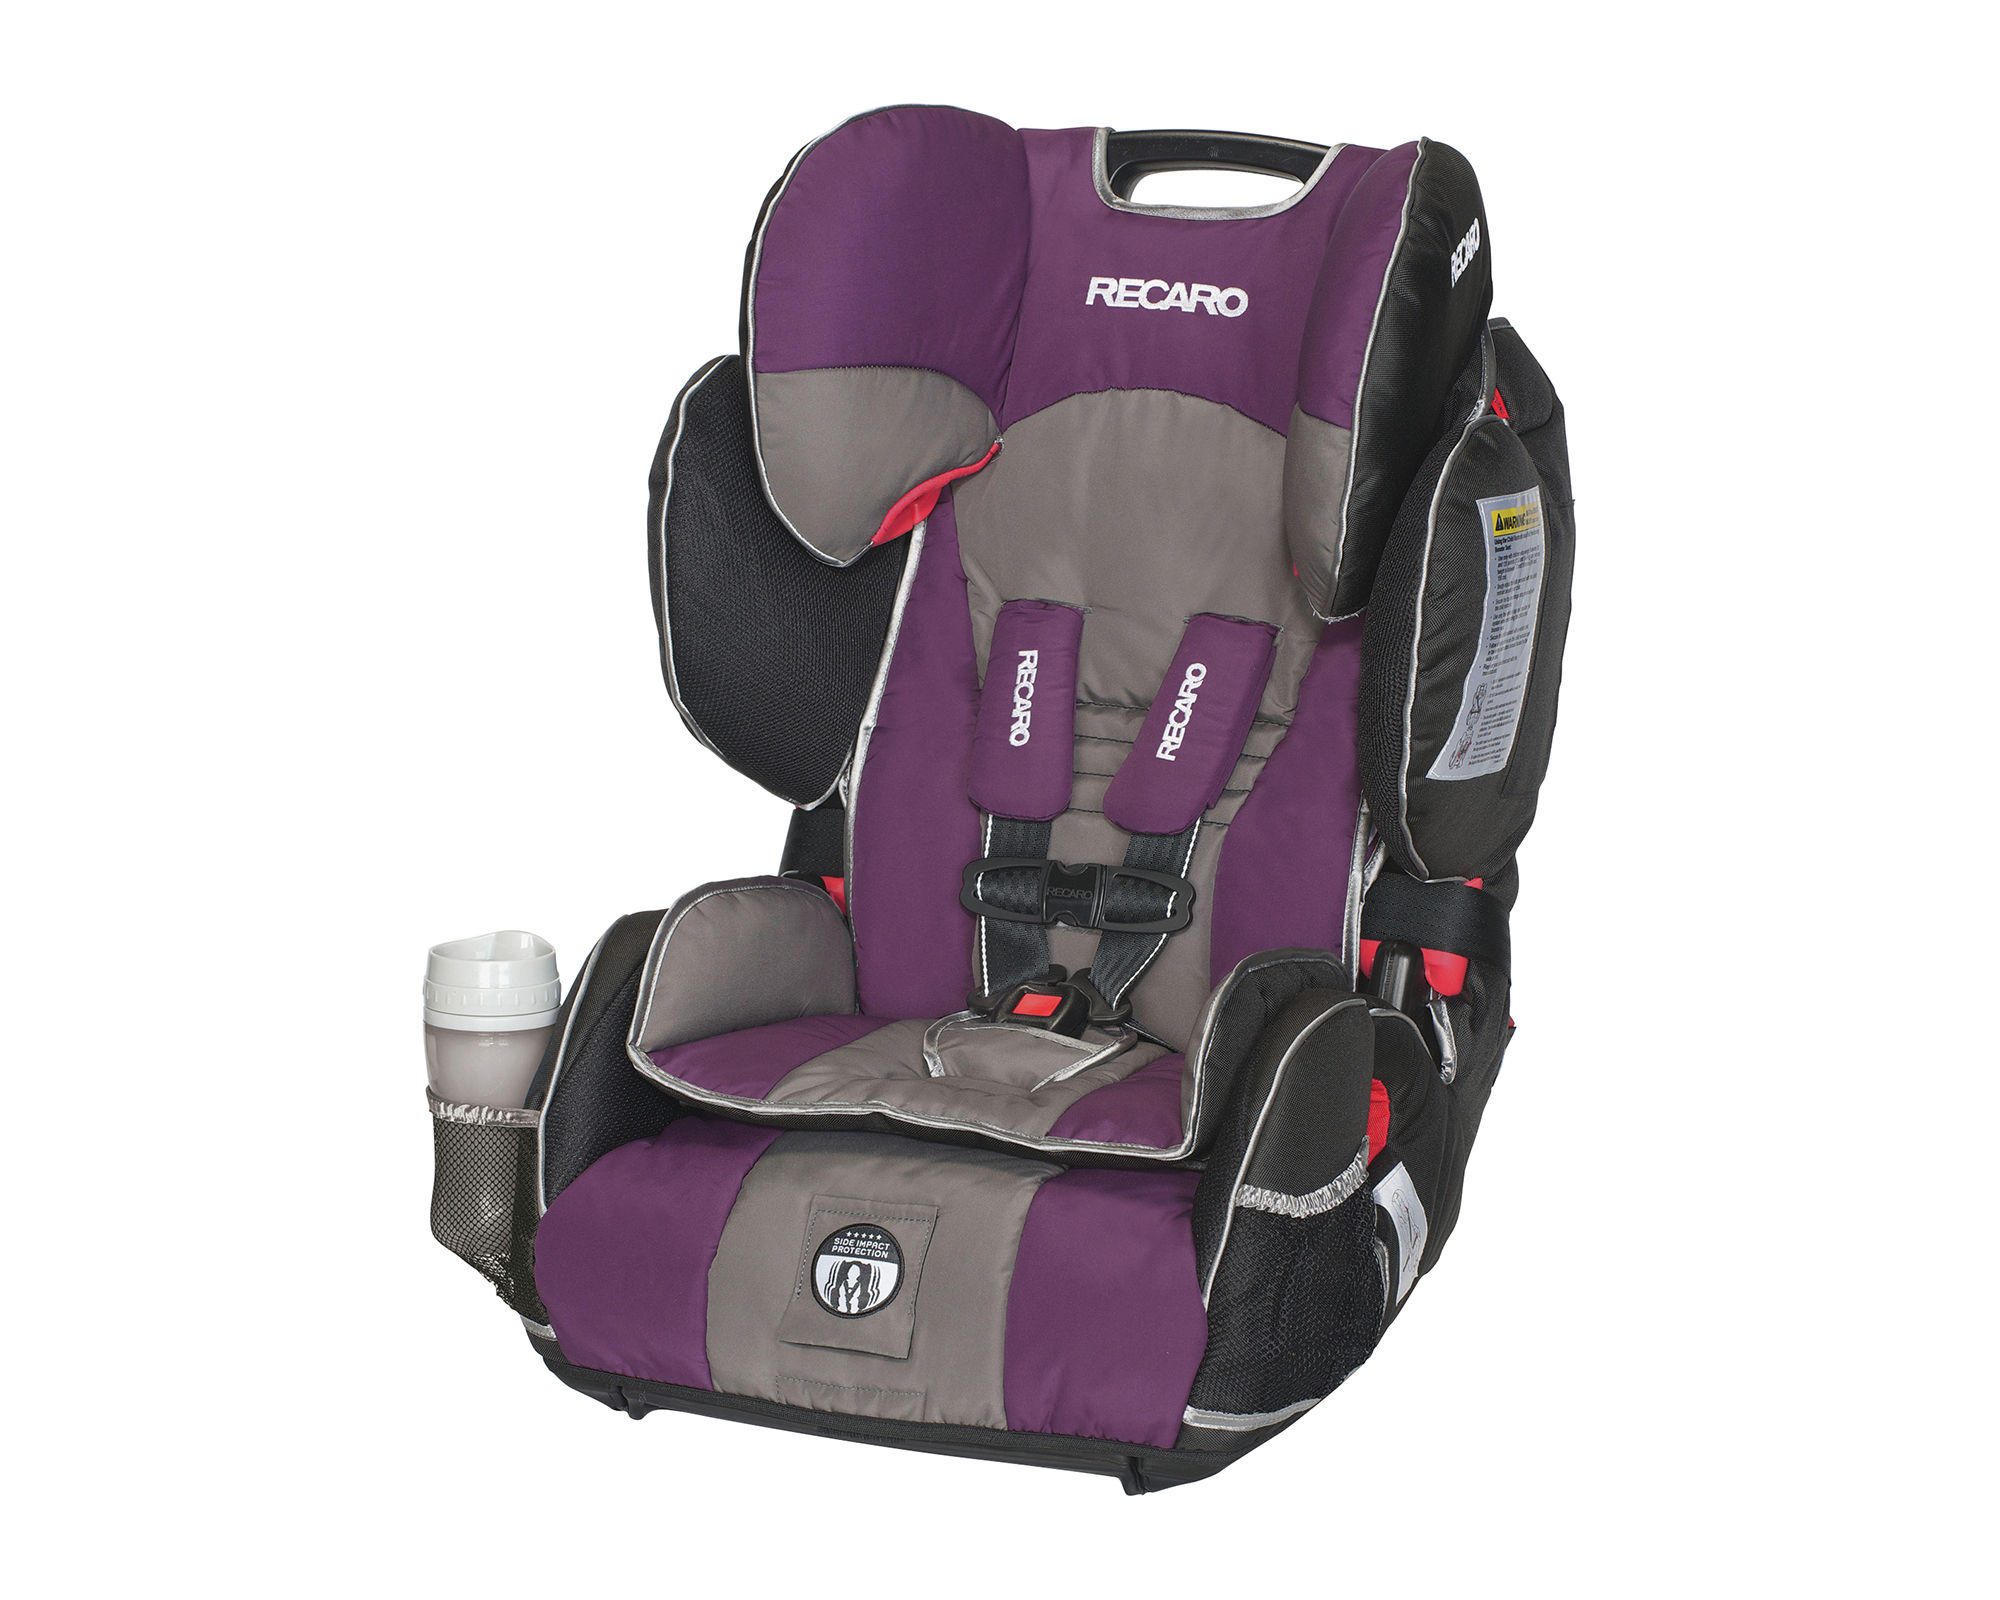 Recaro Performance Sport Harness Booster Car Seat - Plum